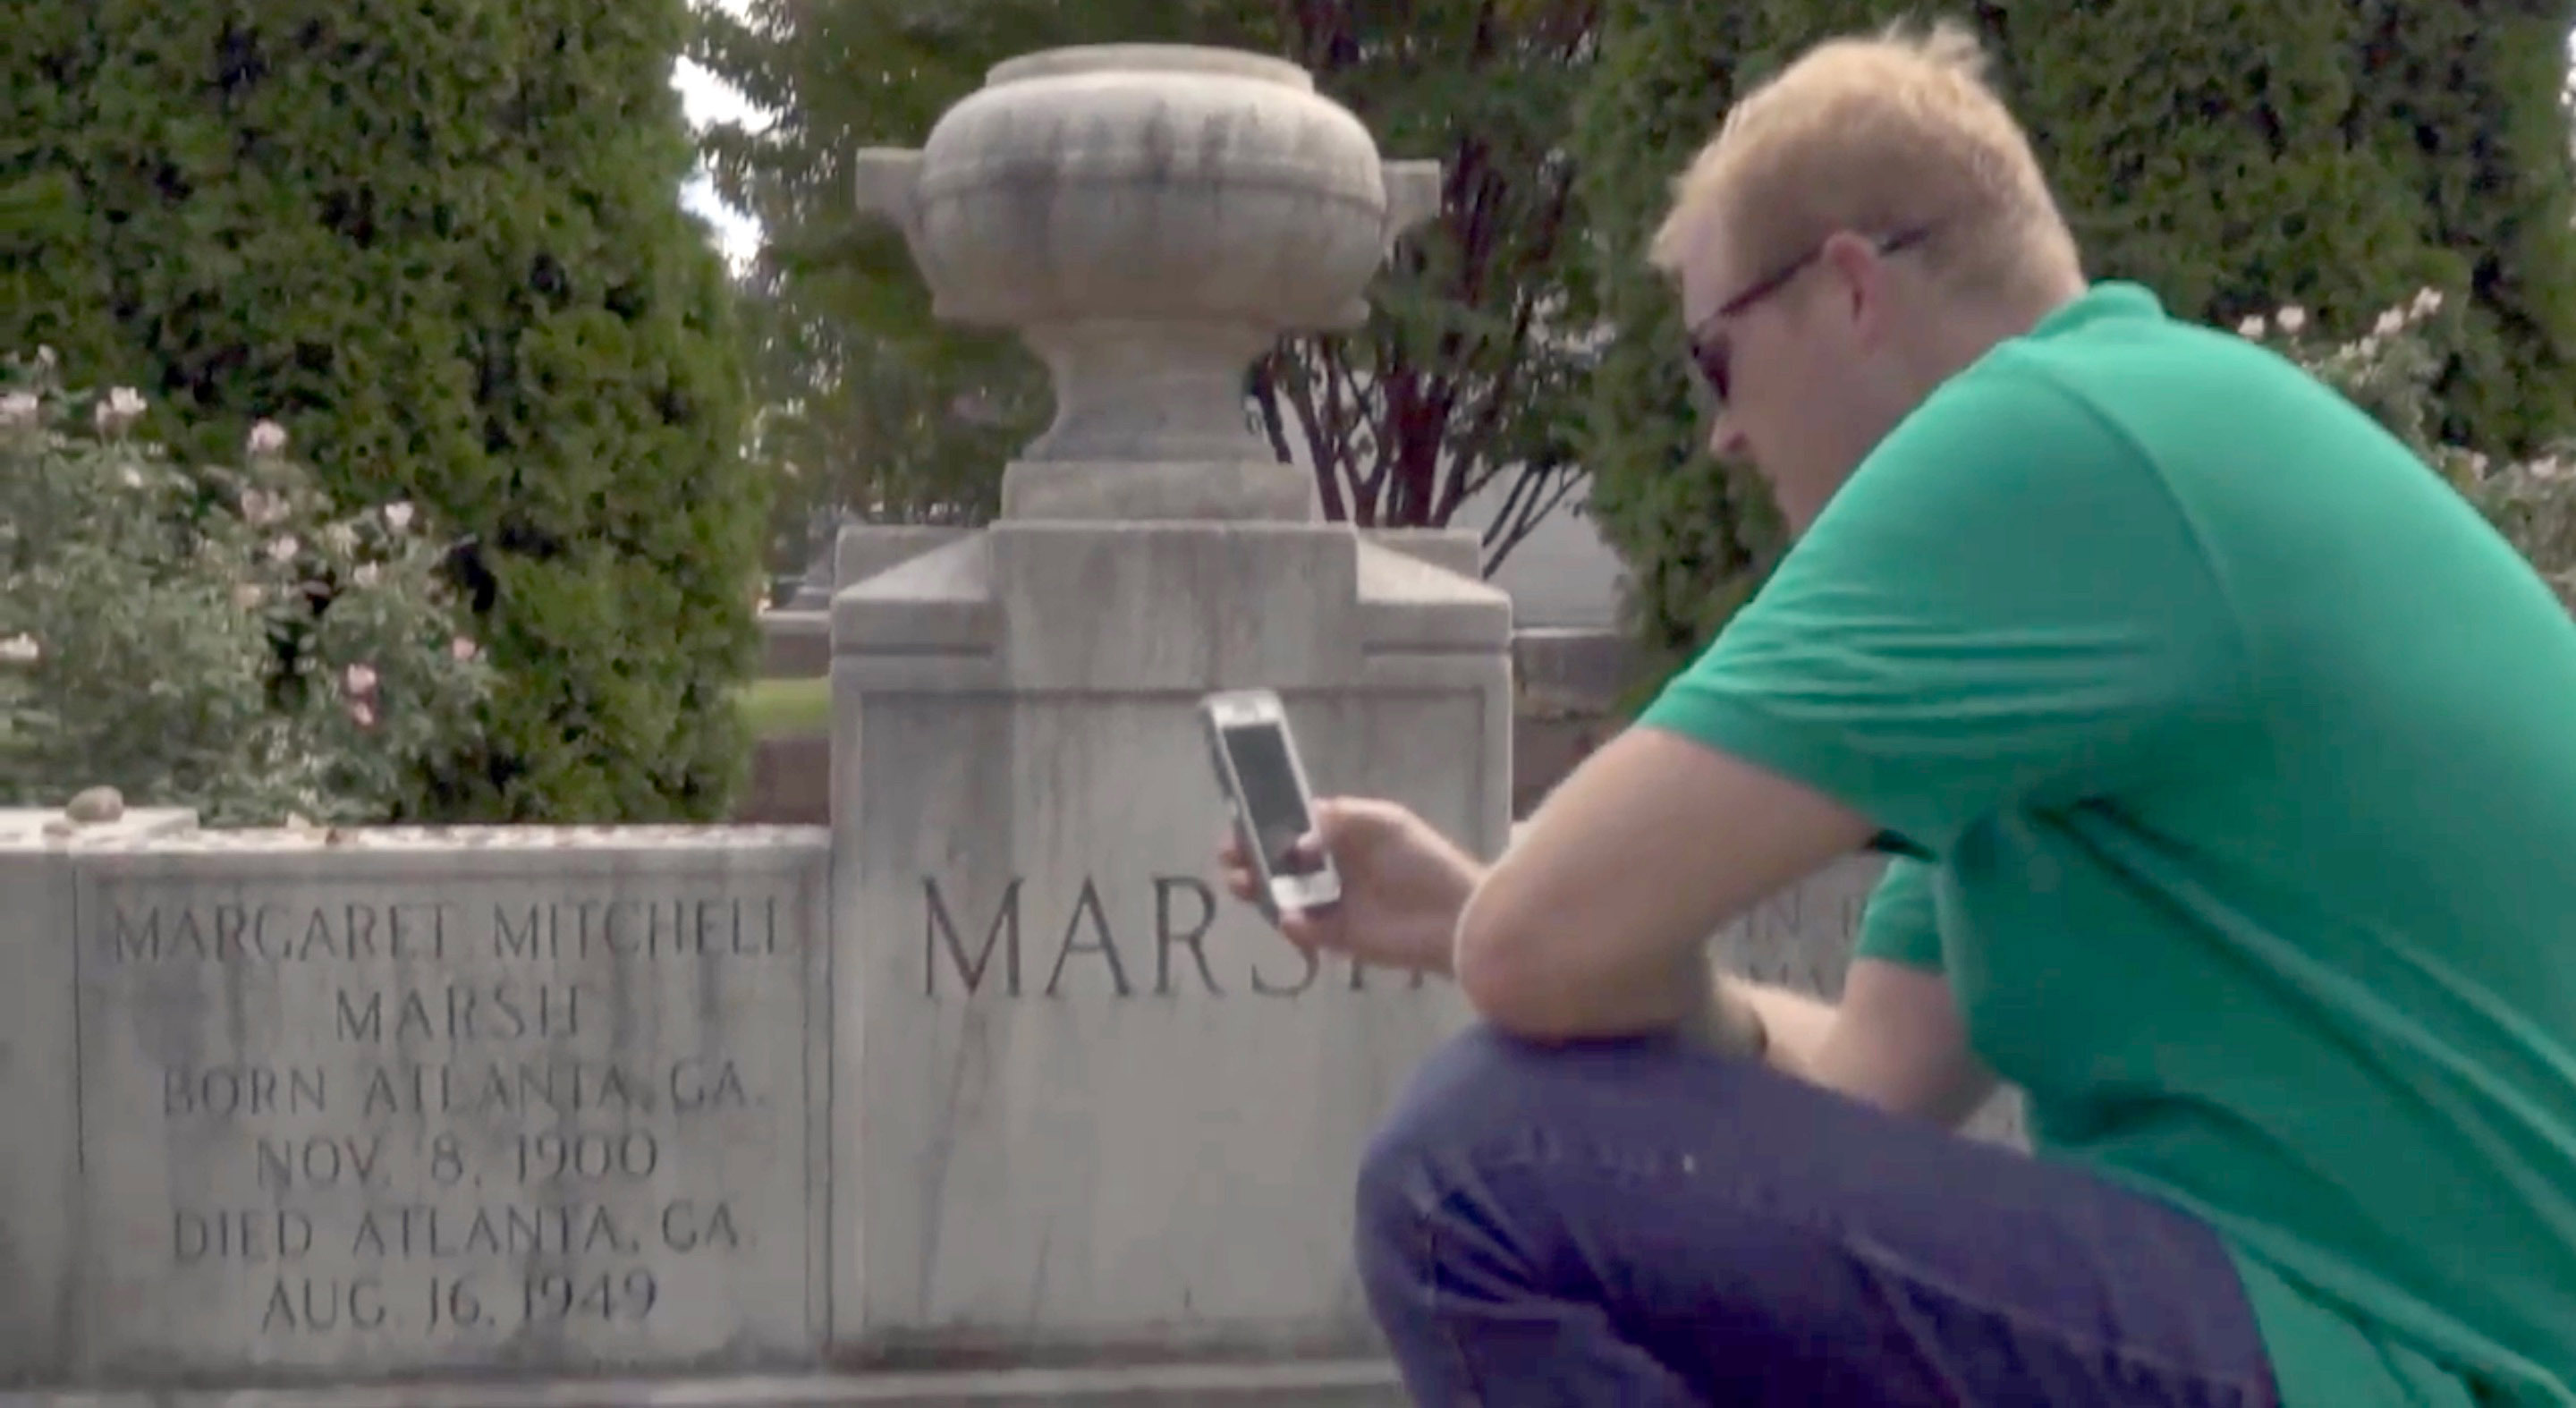 Use the Oakland Cemetery app to learn about Margaret Mitchell and more sites in the historic Atlanta cemetery.